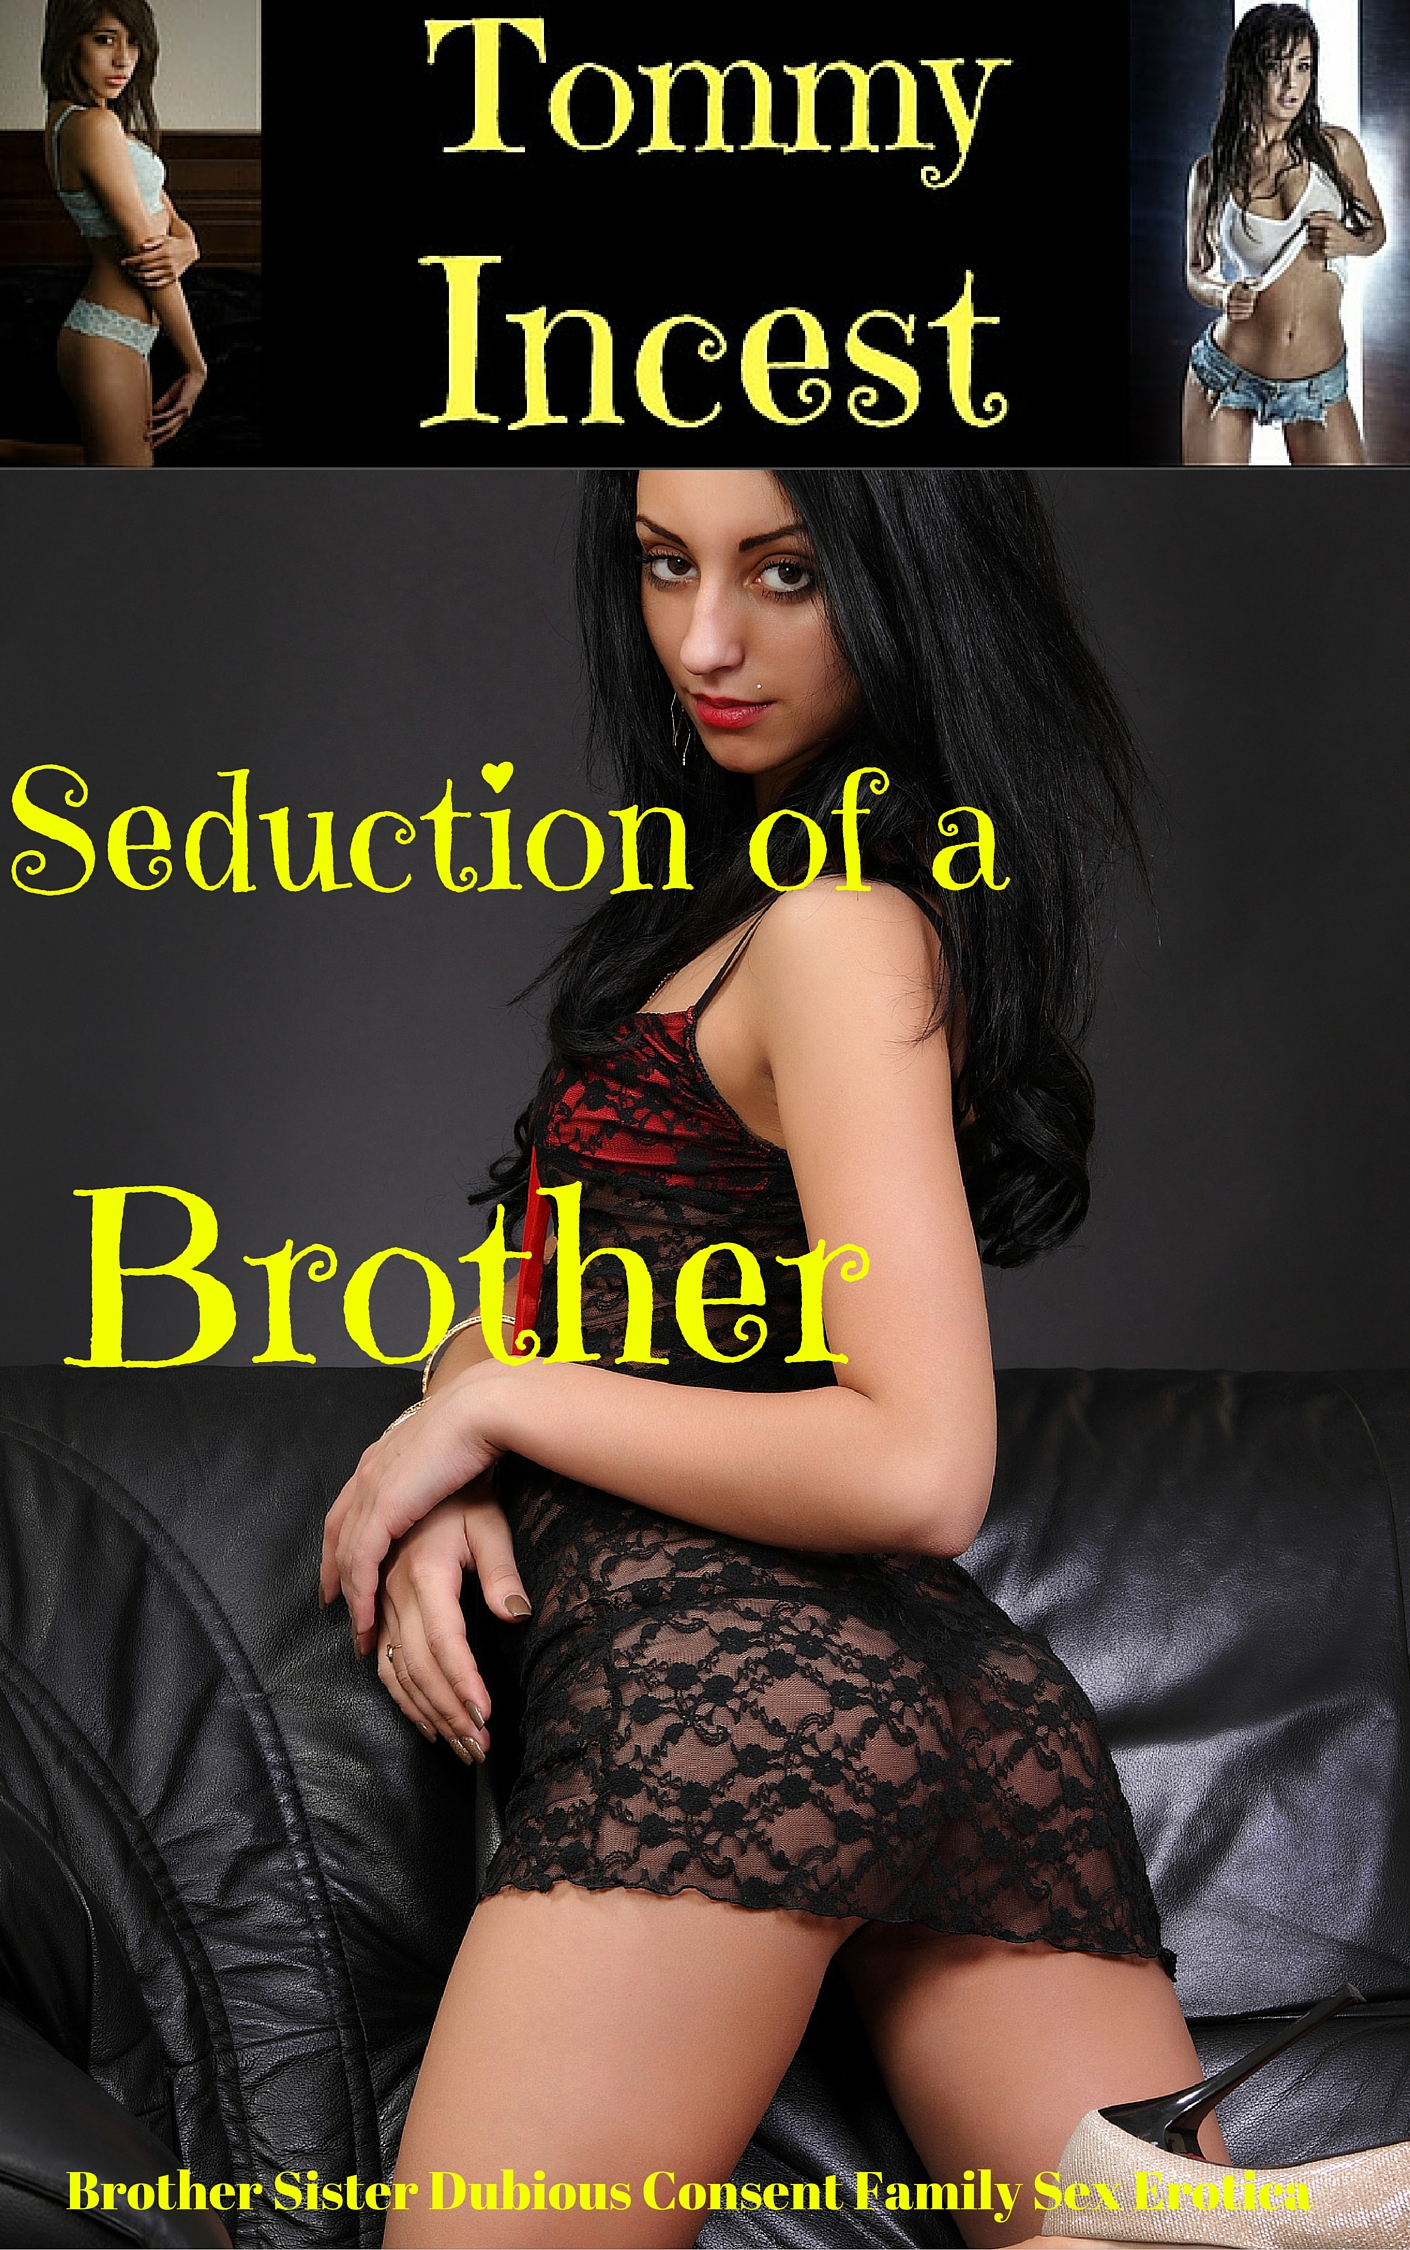 brother/sister incest stories